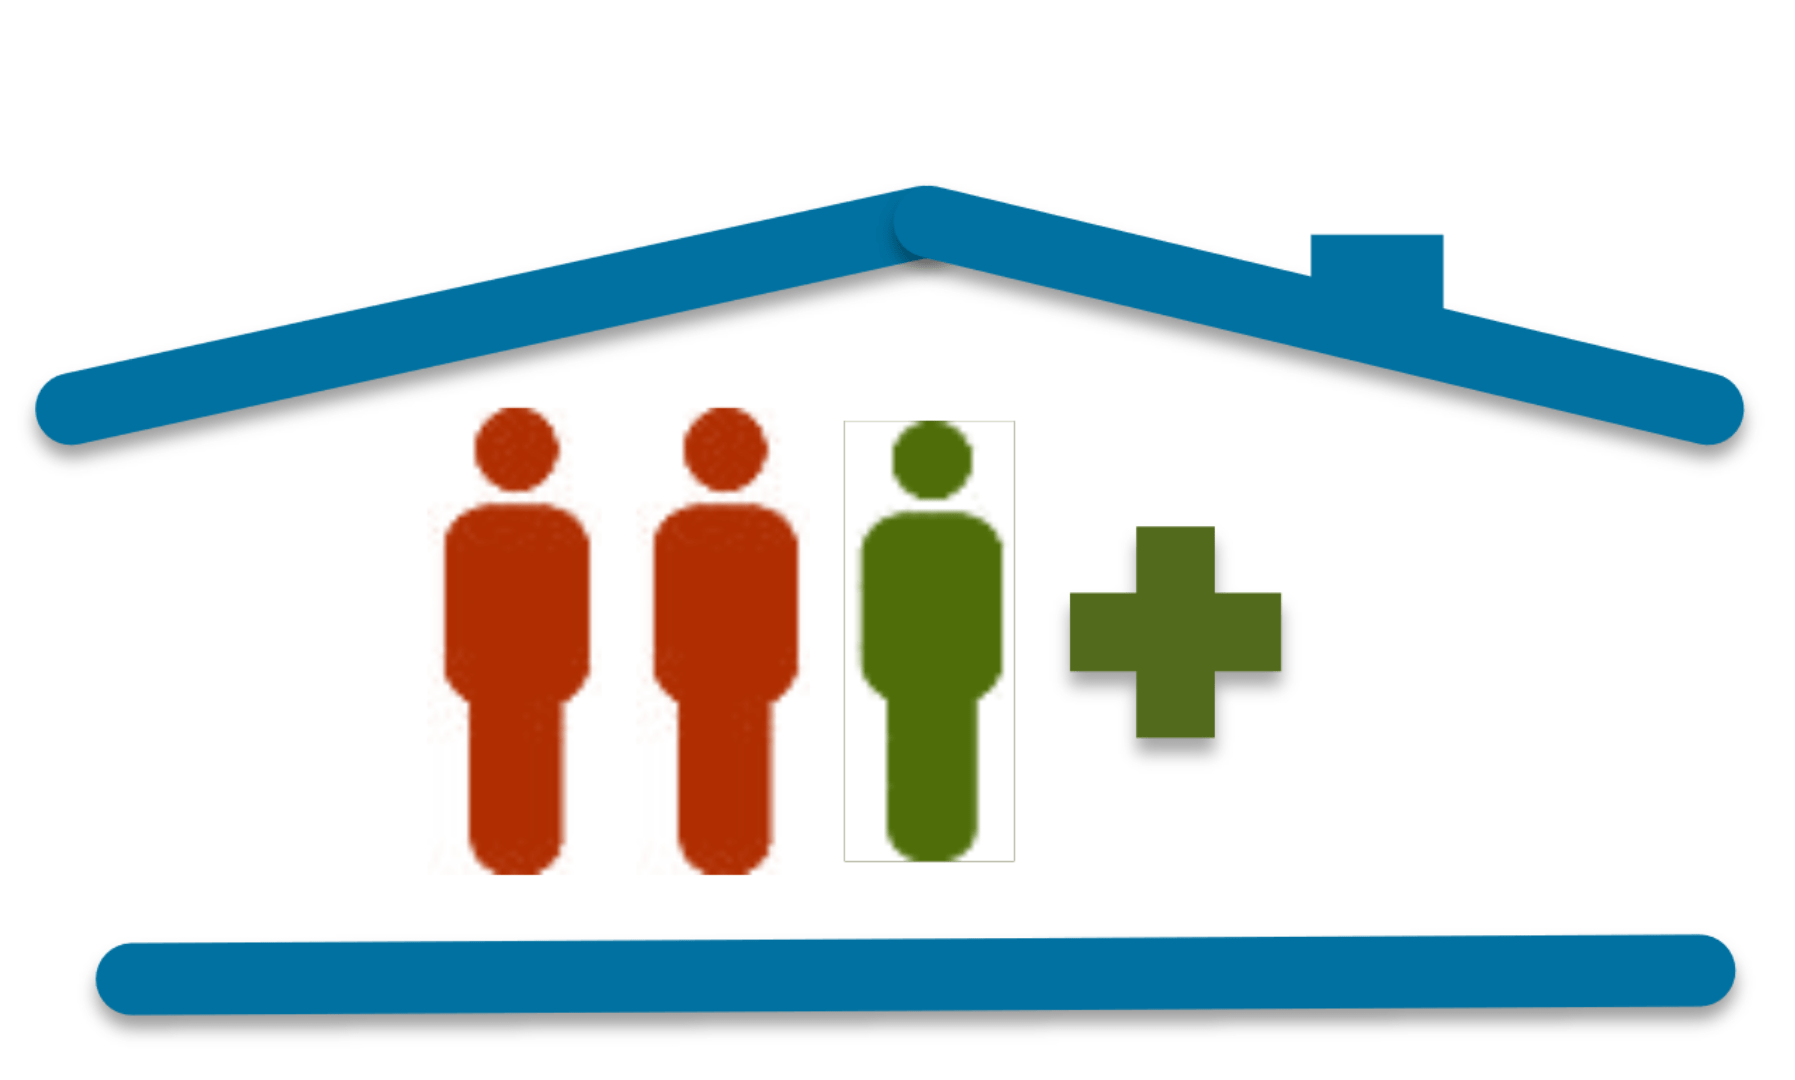 Image depicting group living